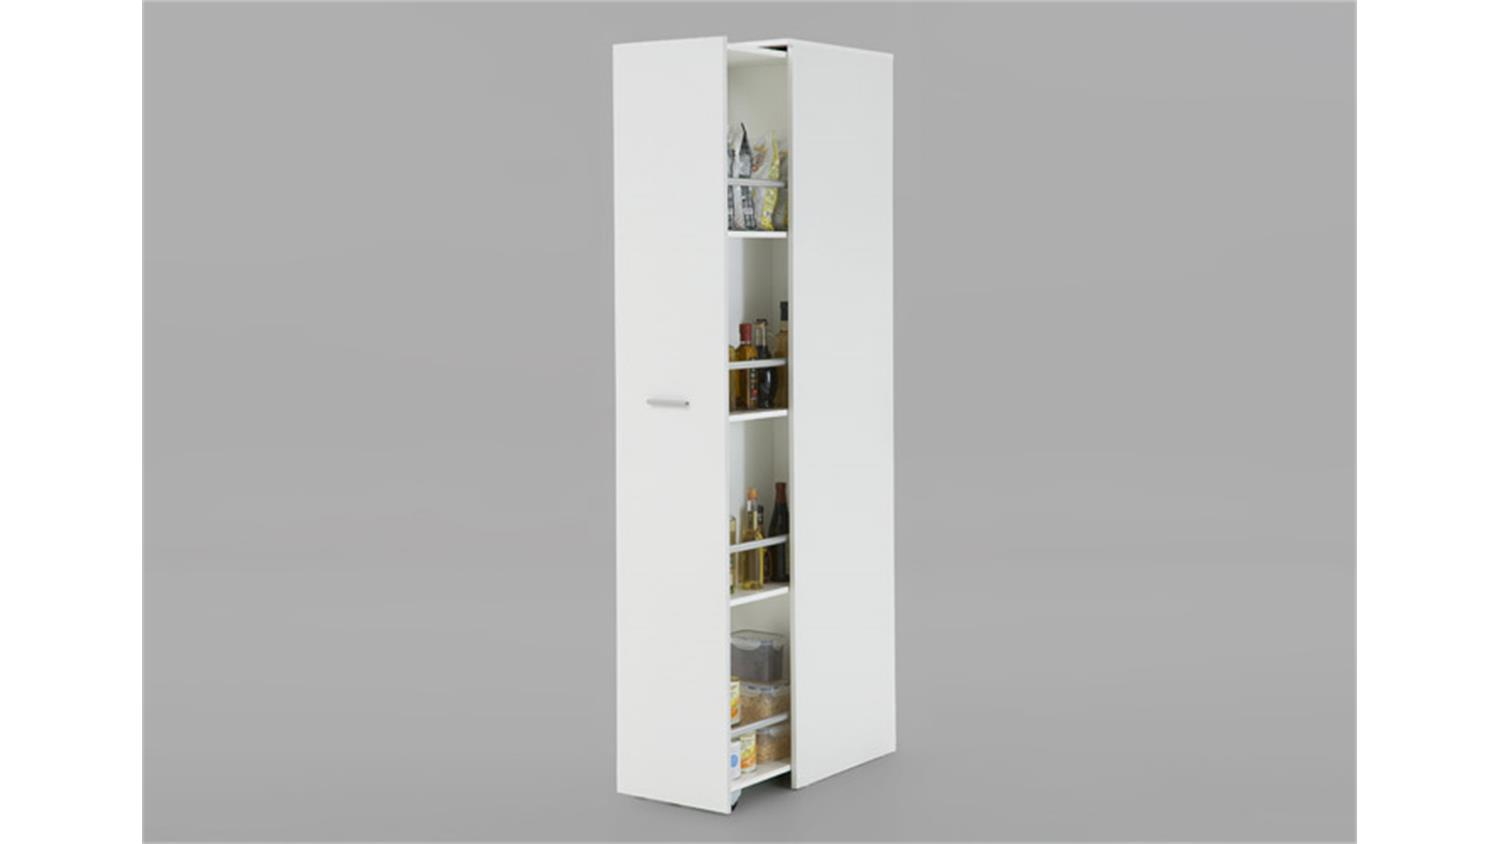 apothekerschrank ronda 1 schrank in wei b 35 cm. Black Bedroom Furniture Sets. Home Design Ideas